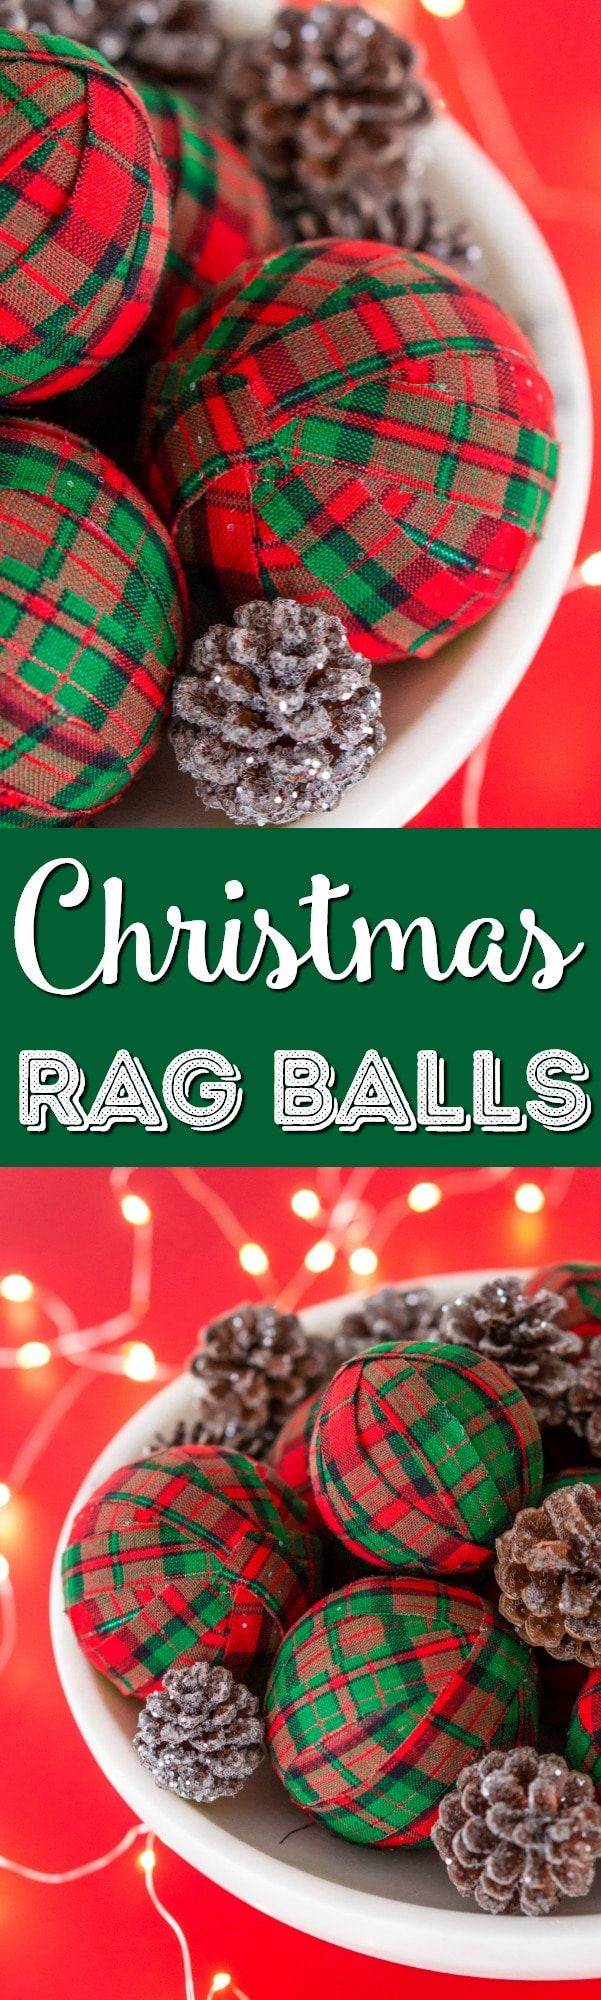 These DIY Holiday Rag Balls are a simple way to add a bit of holiday charm to your home. This craft project is super easy to make with just 4 materials! Makes great ornaments and party favors too! via @sugarandsoulco